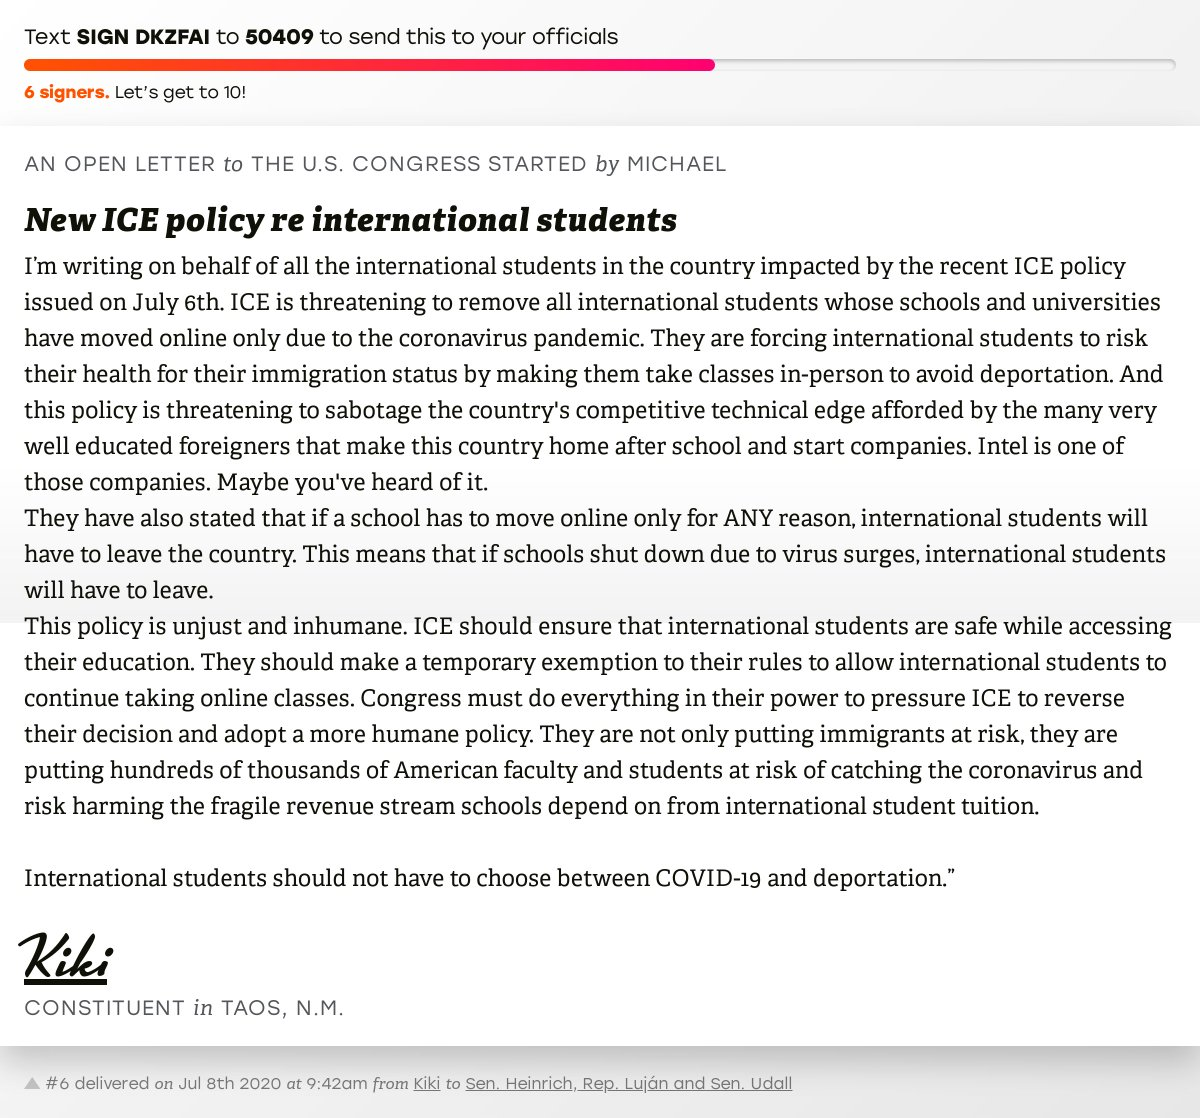 "🖋 Sign ""New ICE policy re international students"" and I'll deliver a copy to your officials: https://t.co/hRLlDKO7cu  📨 No. 6 is from @kikishakti to @MartinHeinrich, @RepBenRayLujan and @SenatorTomUdall #NM03 #NMpolitics #NMpol #NMpols #COVID19 https://t.co/oE4T3myjxf"